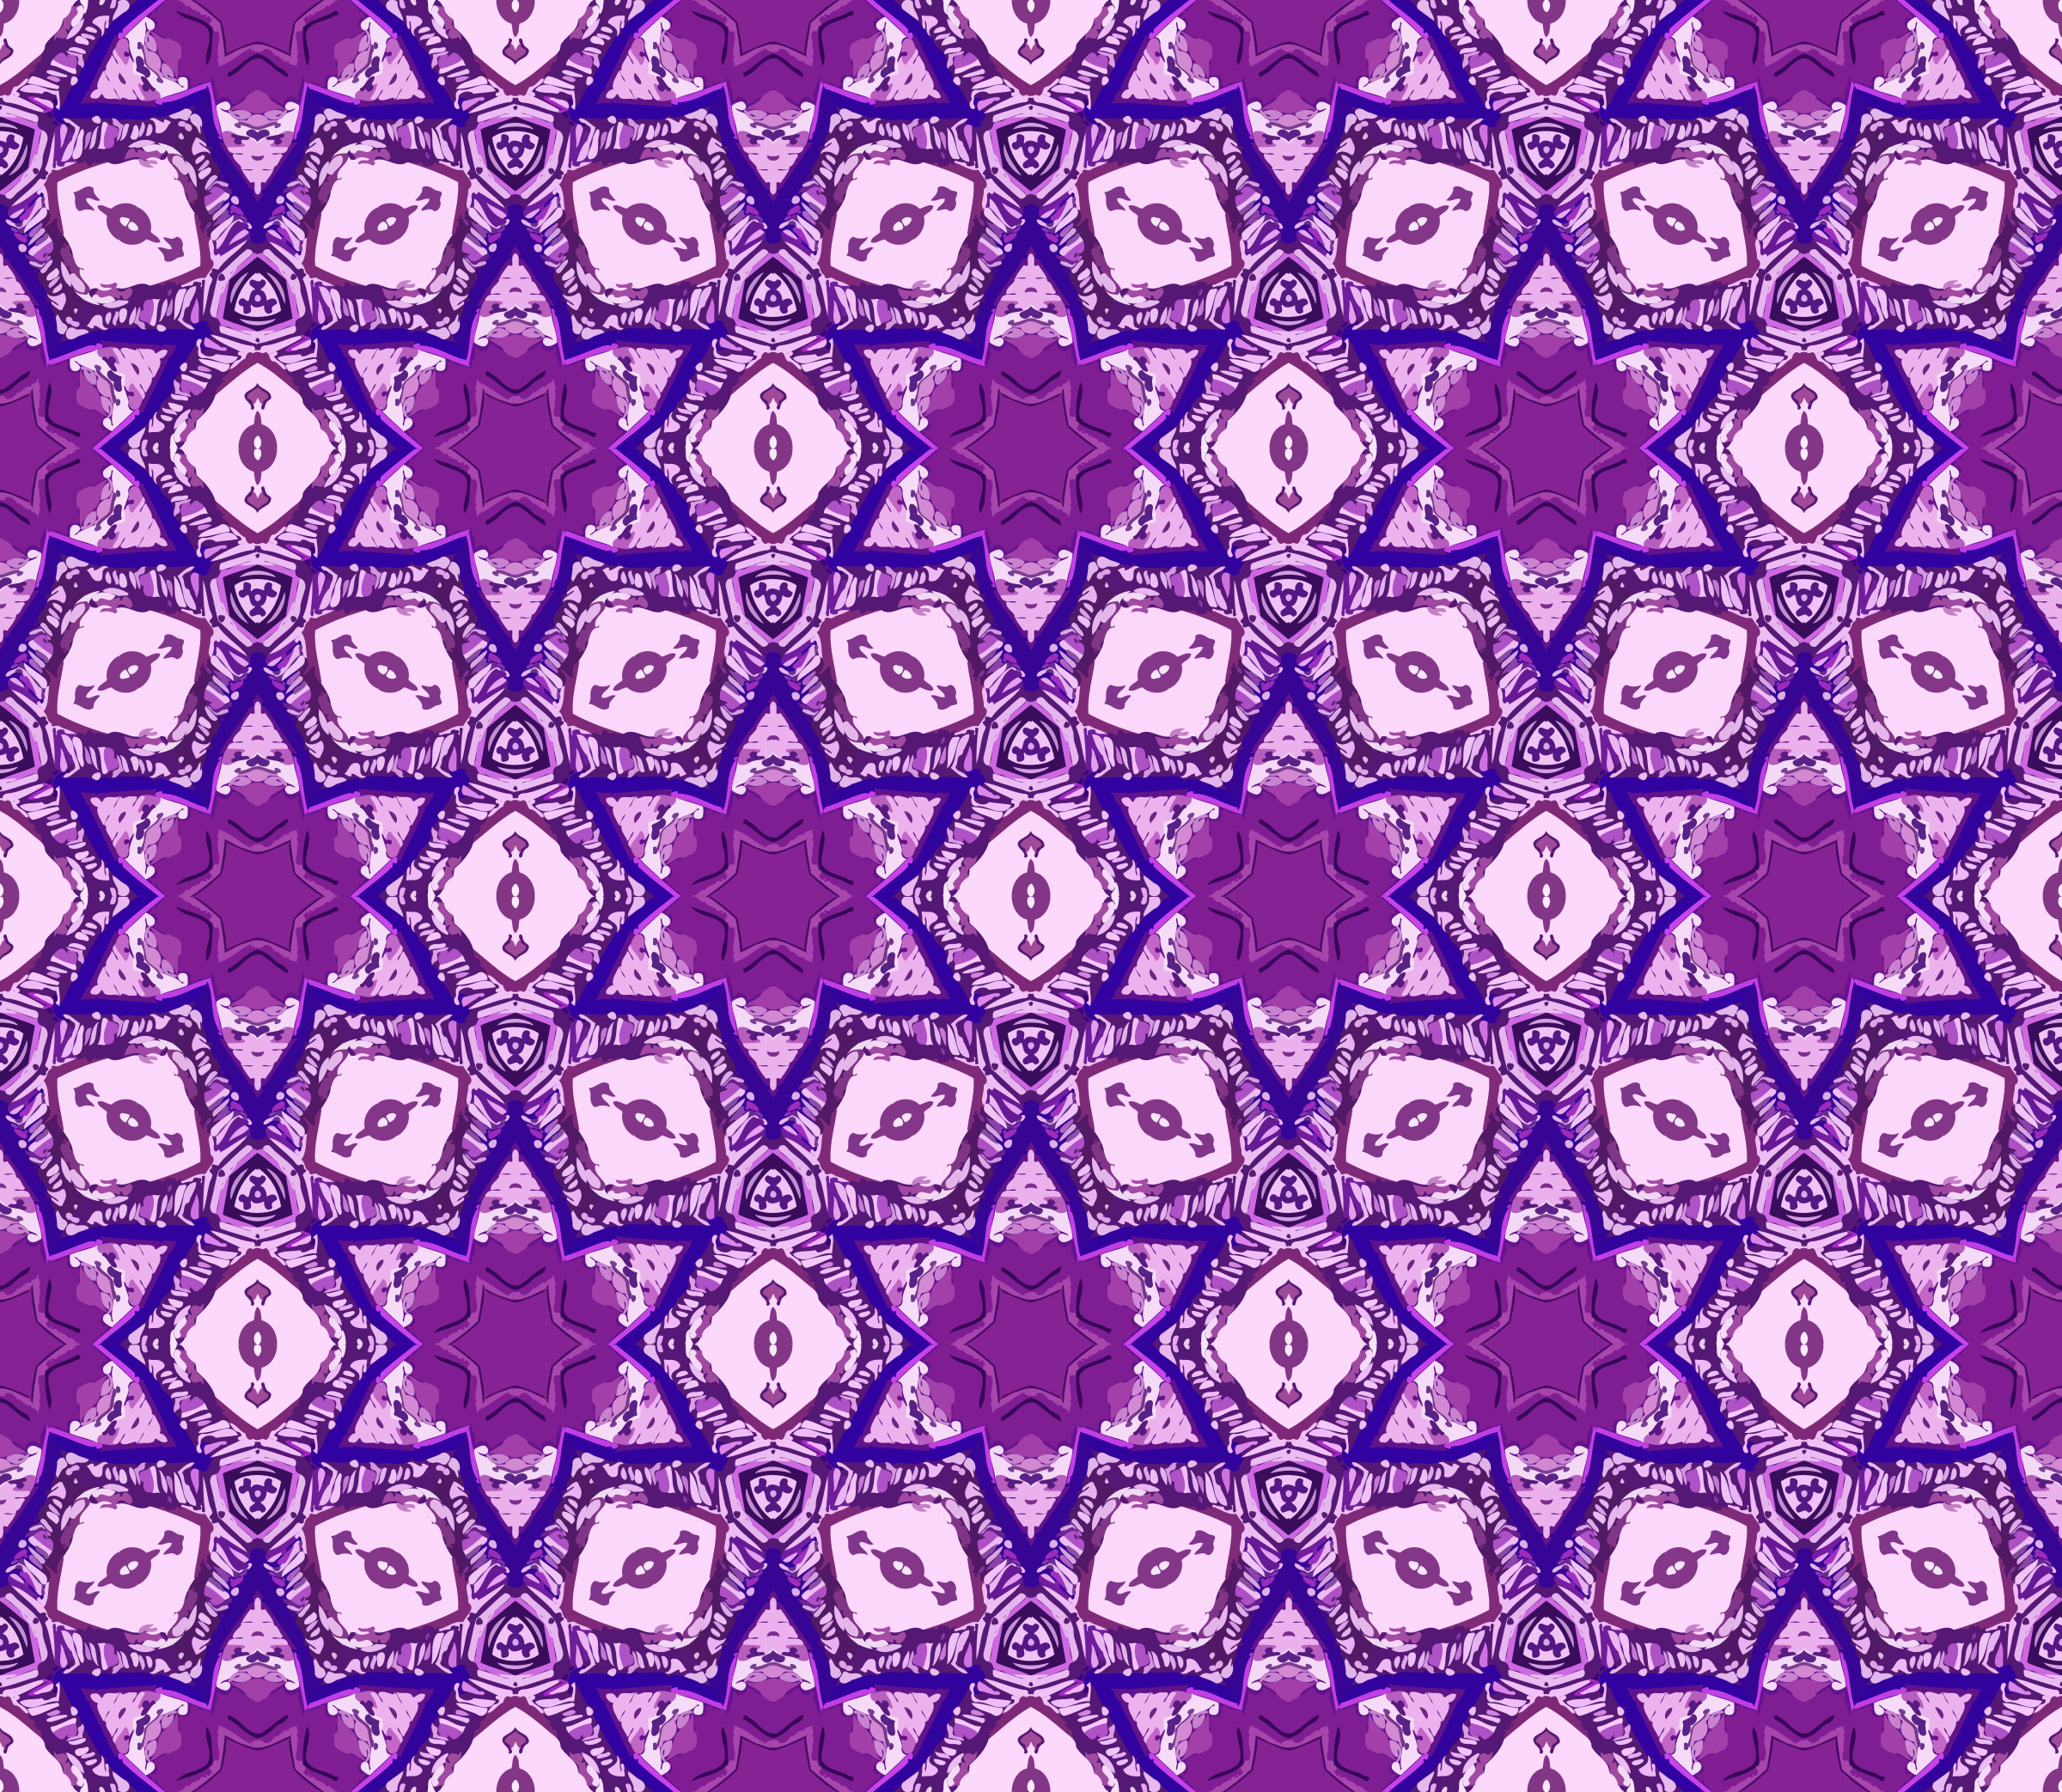 Background pattern 153 (colour 3) by Firkin